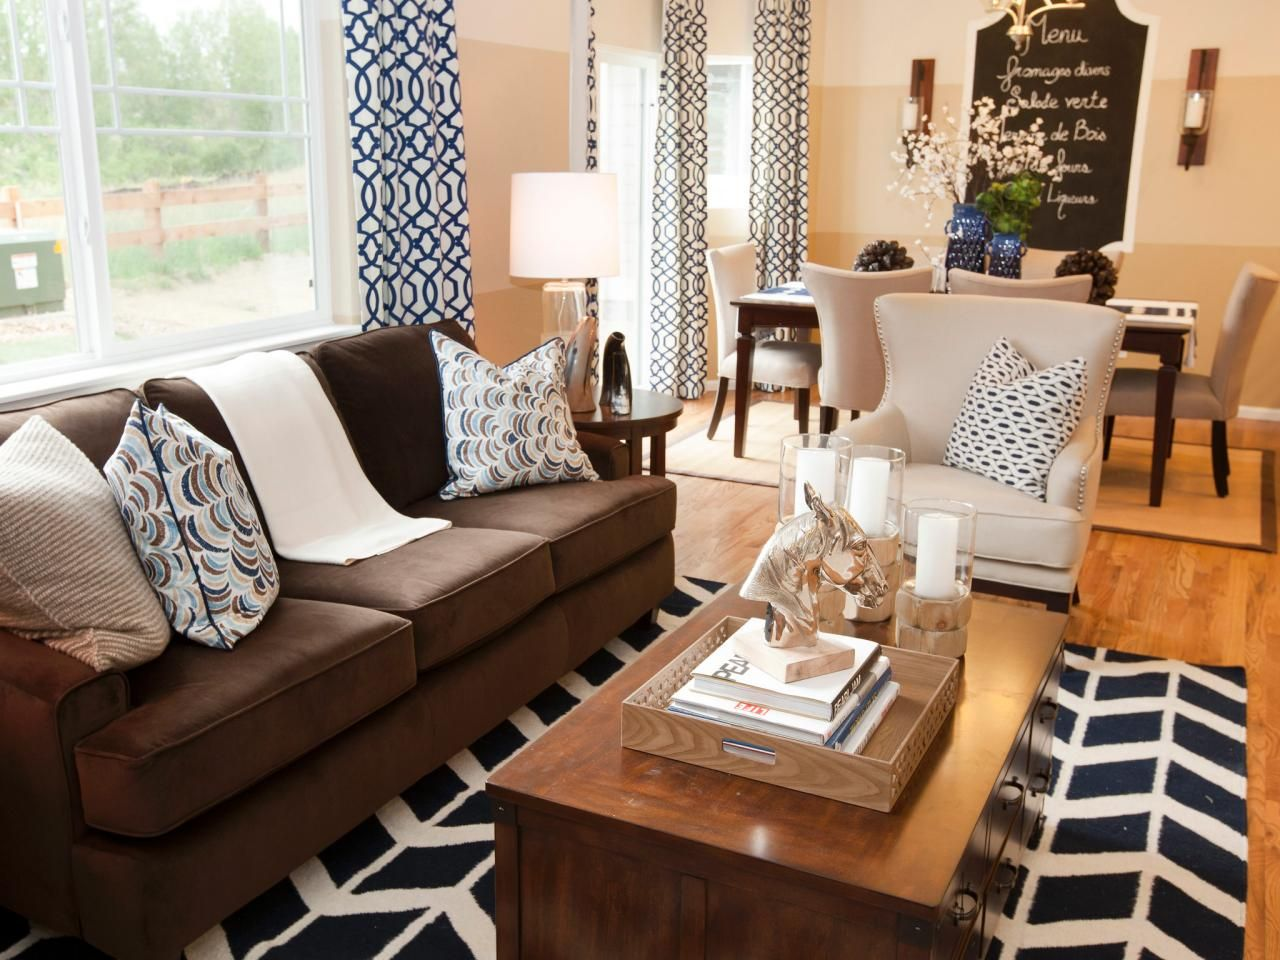 Pin By Paula Bengel On Decorating In 2019 Brown Couch